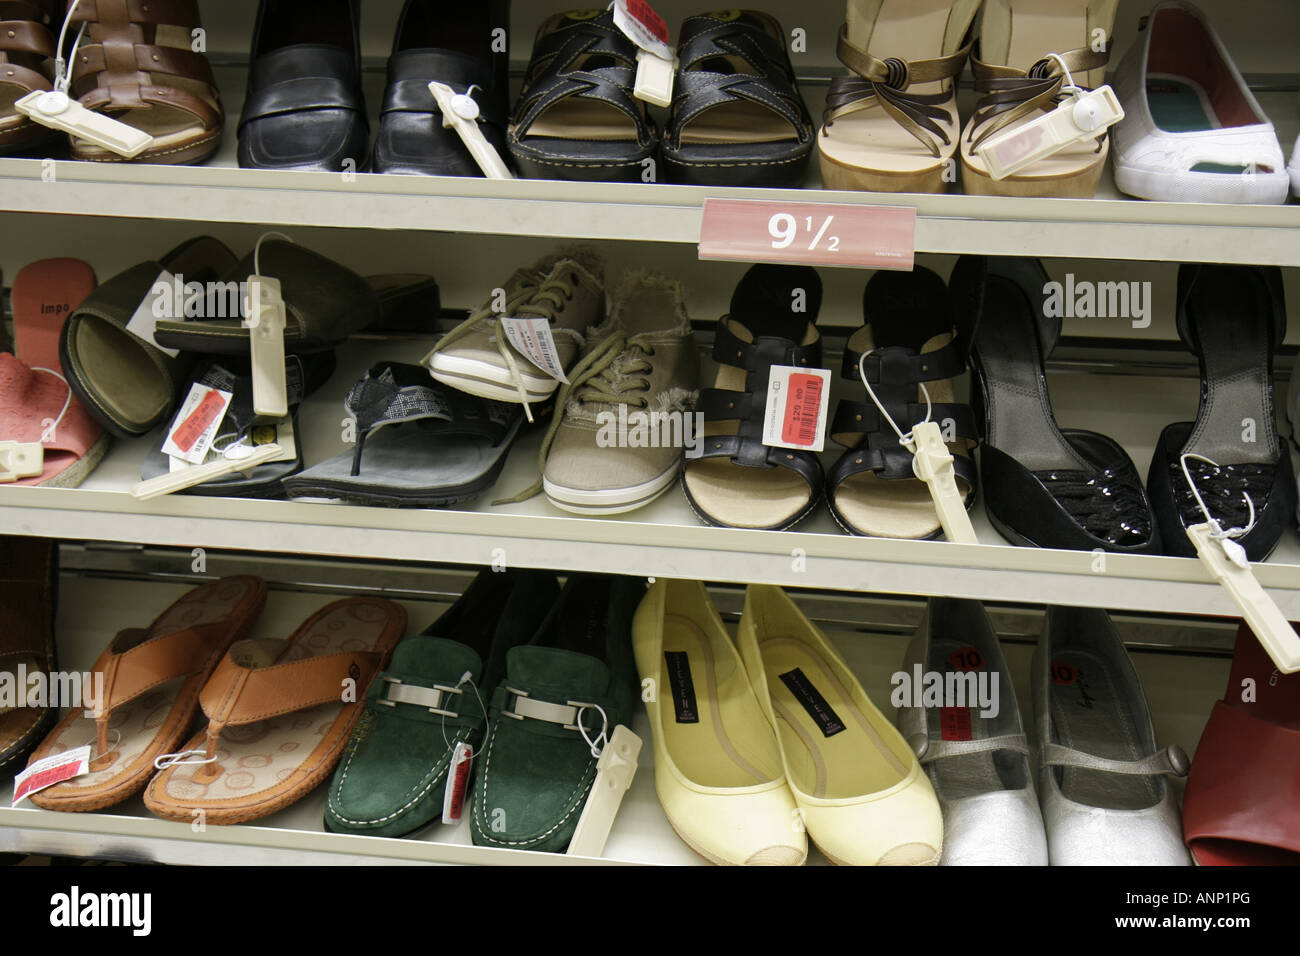 picture about Marshalls Printable Coupons identify Marshalls shop coupon : Boots for gals at sears